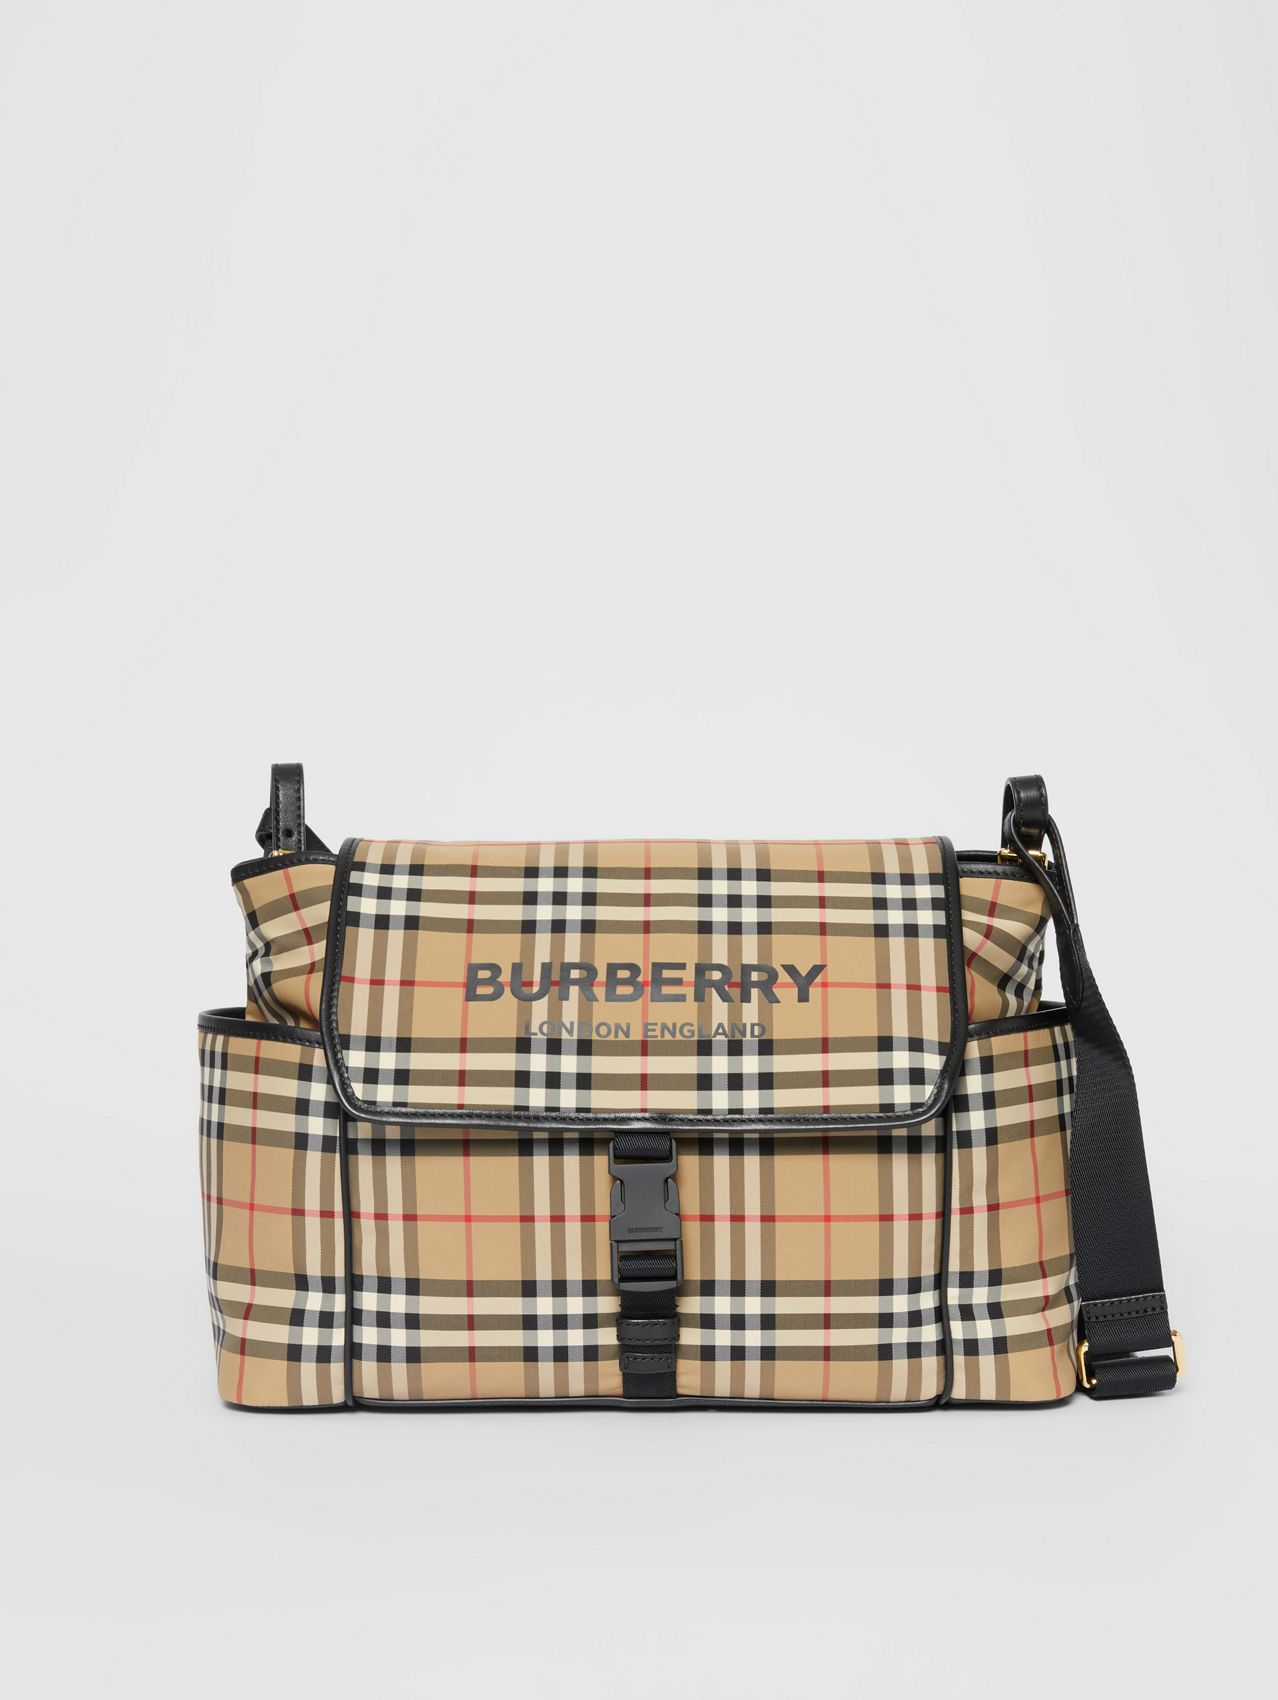 Logo Print Vintage Check Baby Changing Bag (Archive Beige)